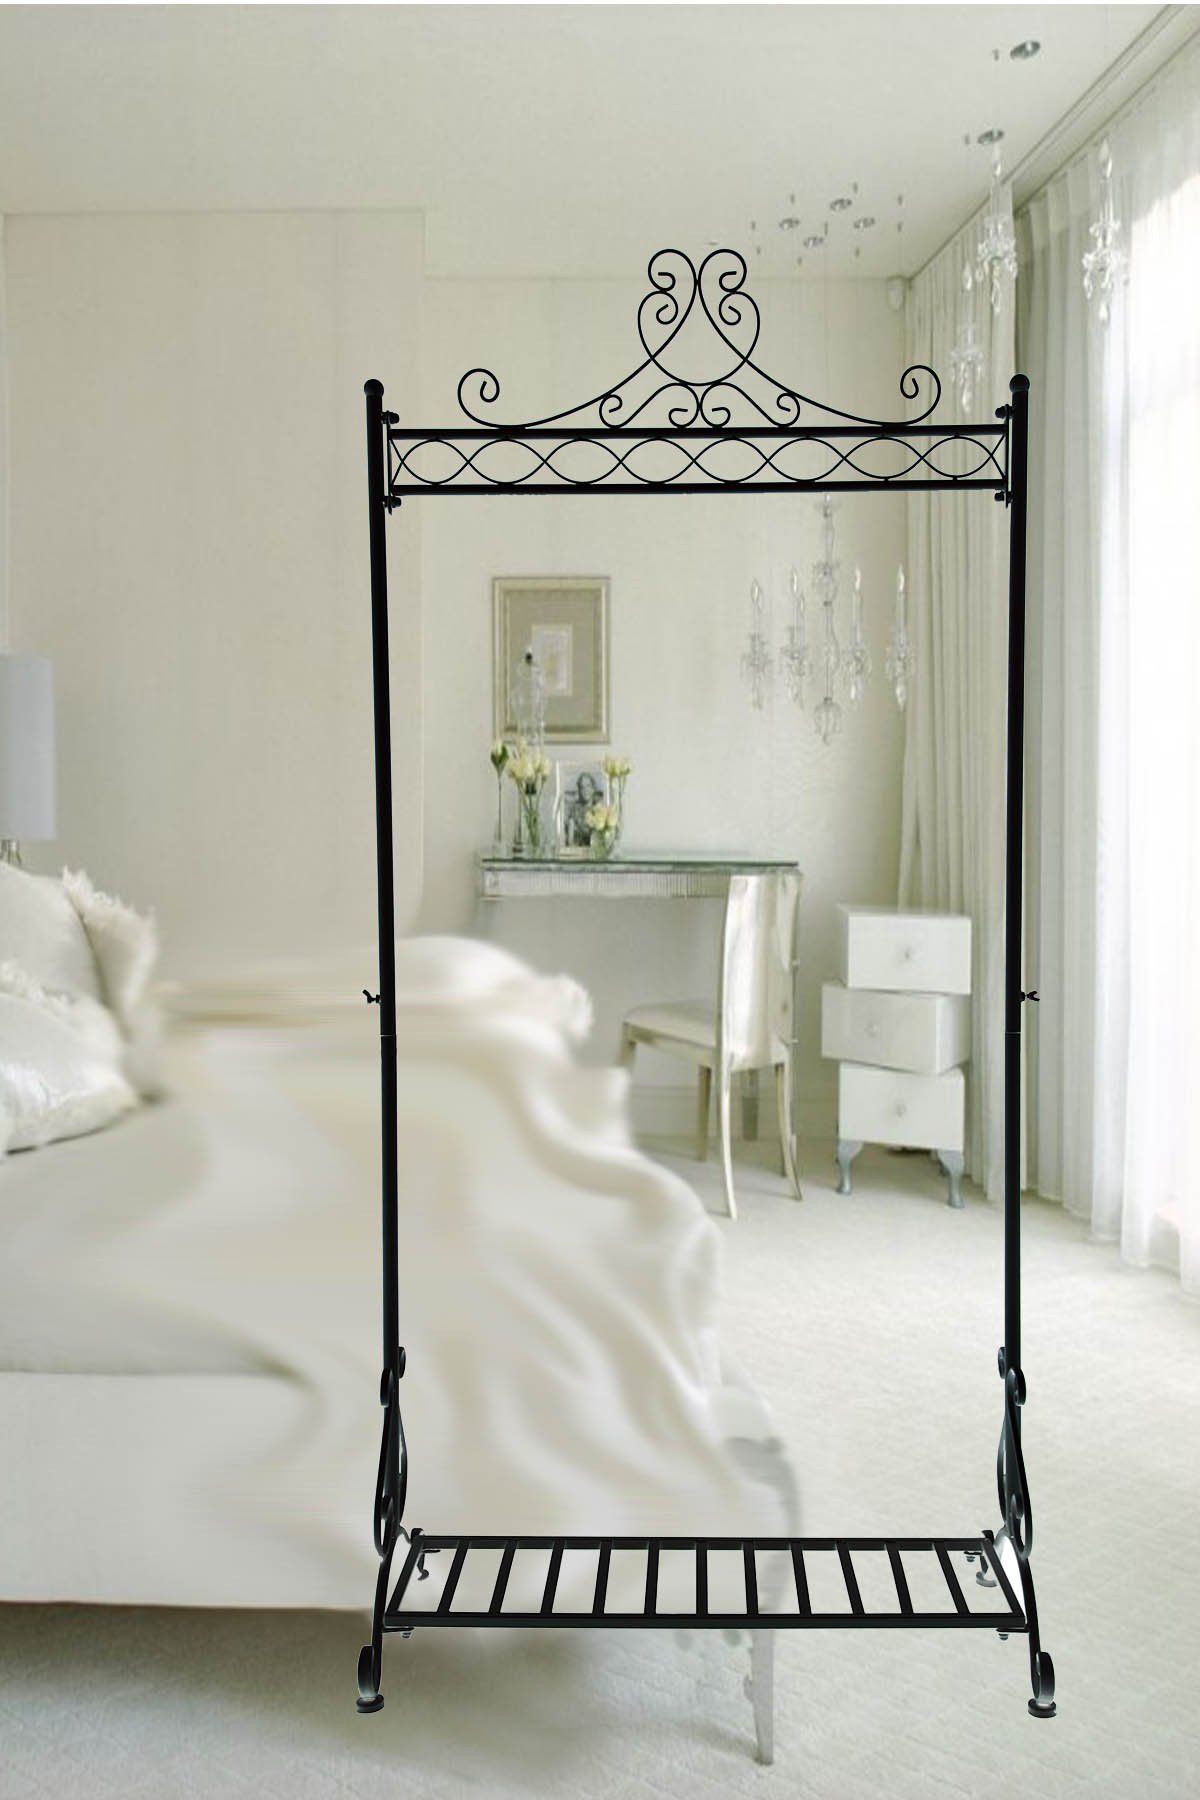 Vintage Design Black Clothes Hanging Rails, Metal, Free Standing ...